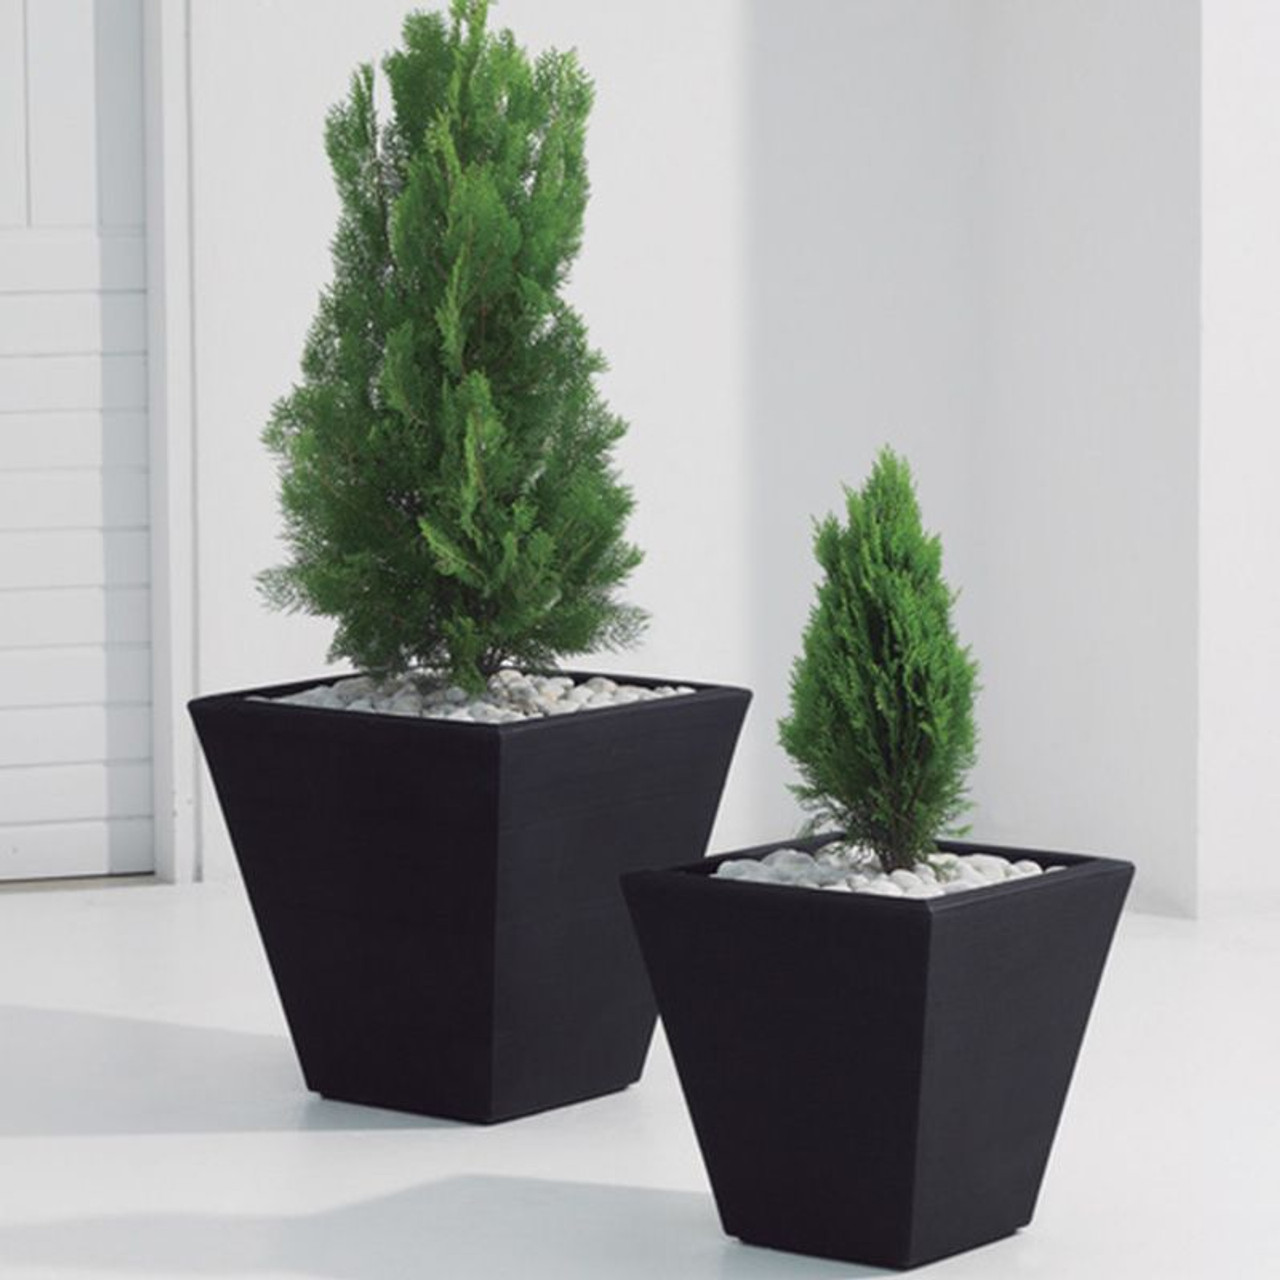 planter international faro large graphite tall the plntr in products campania gates square planters garden